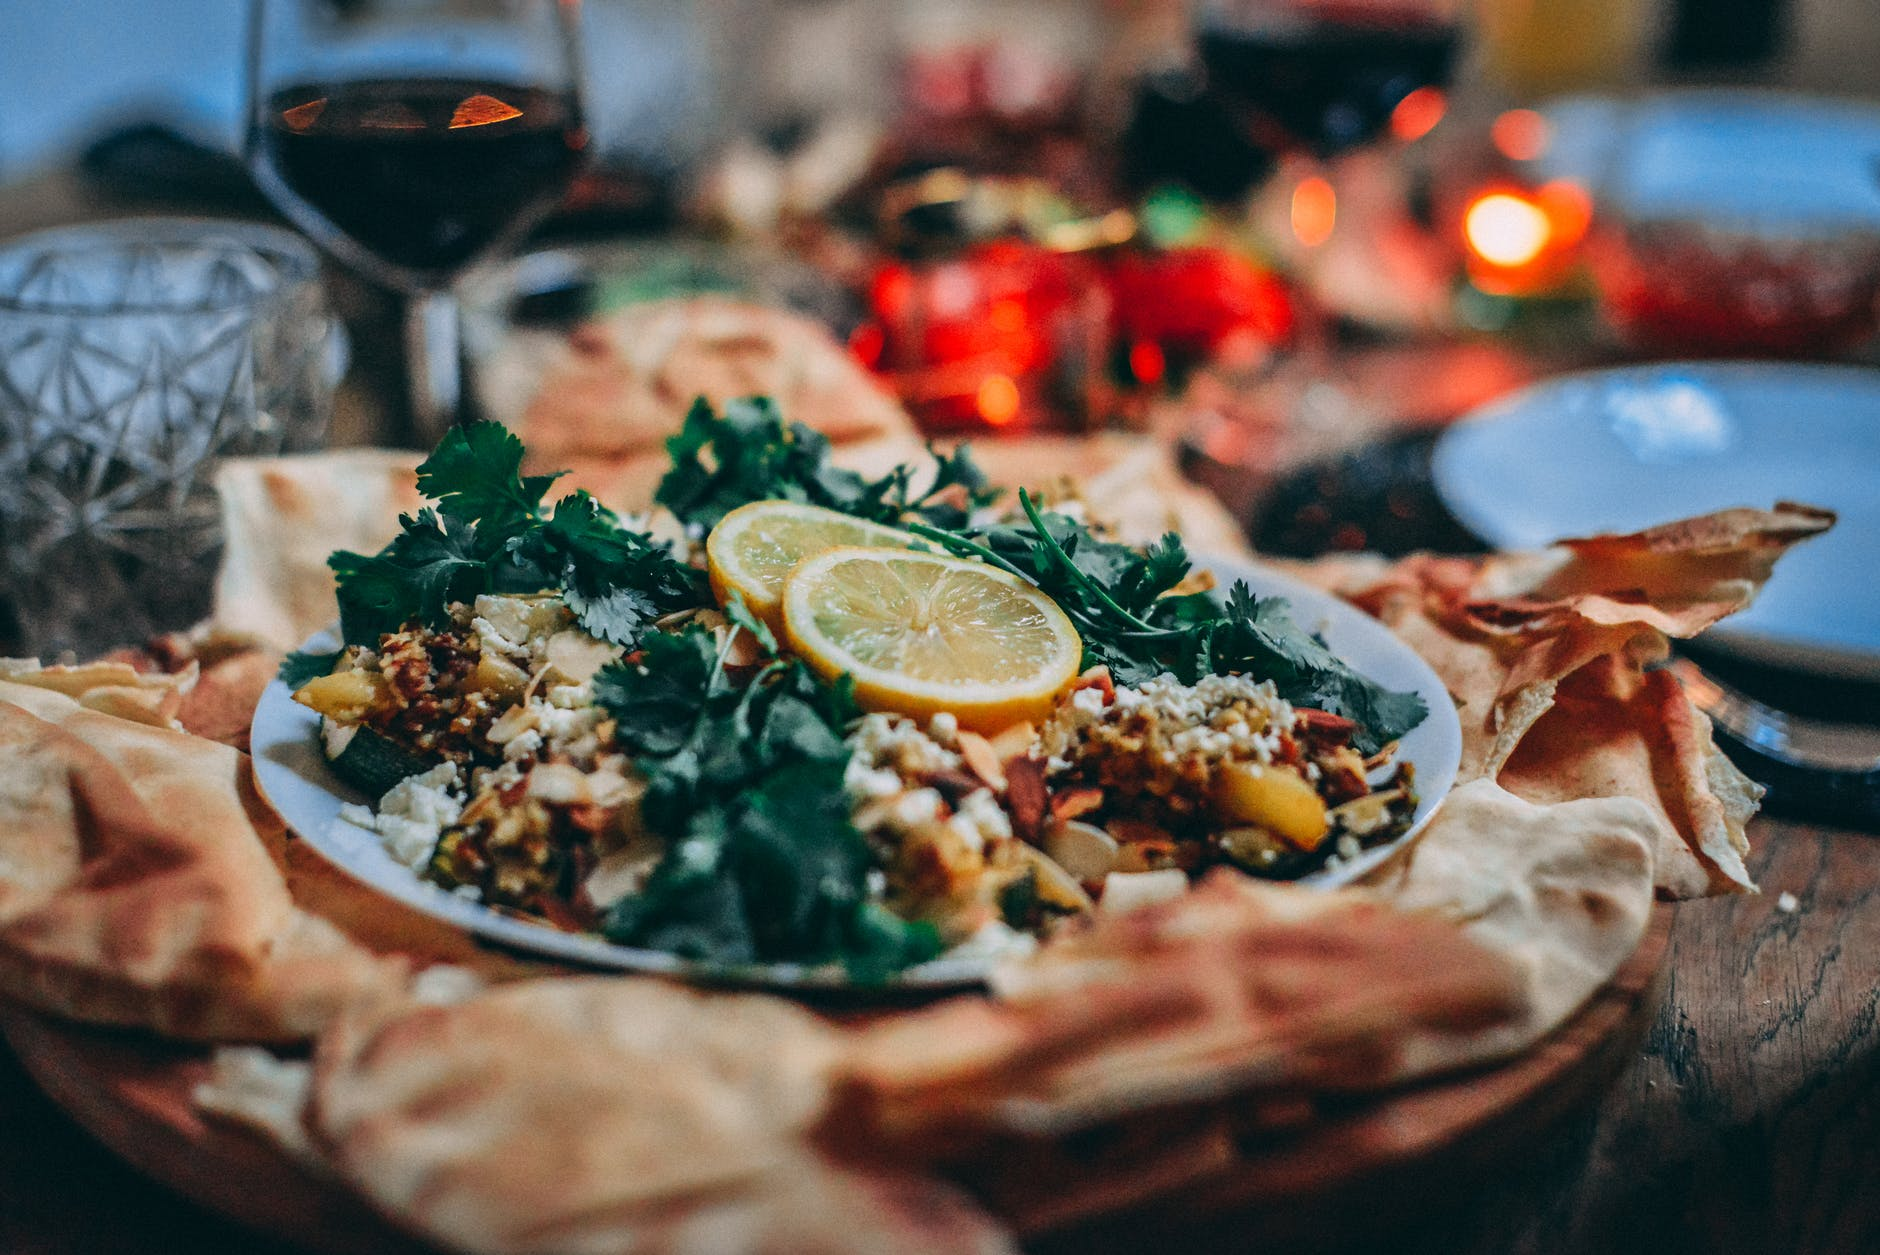 Alisha made my favorite dinner and set the table. | Source: Pexels